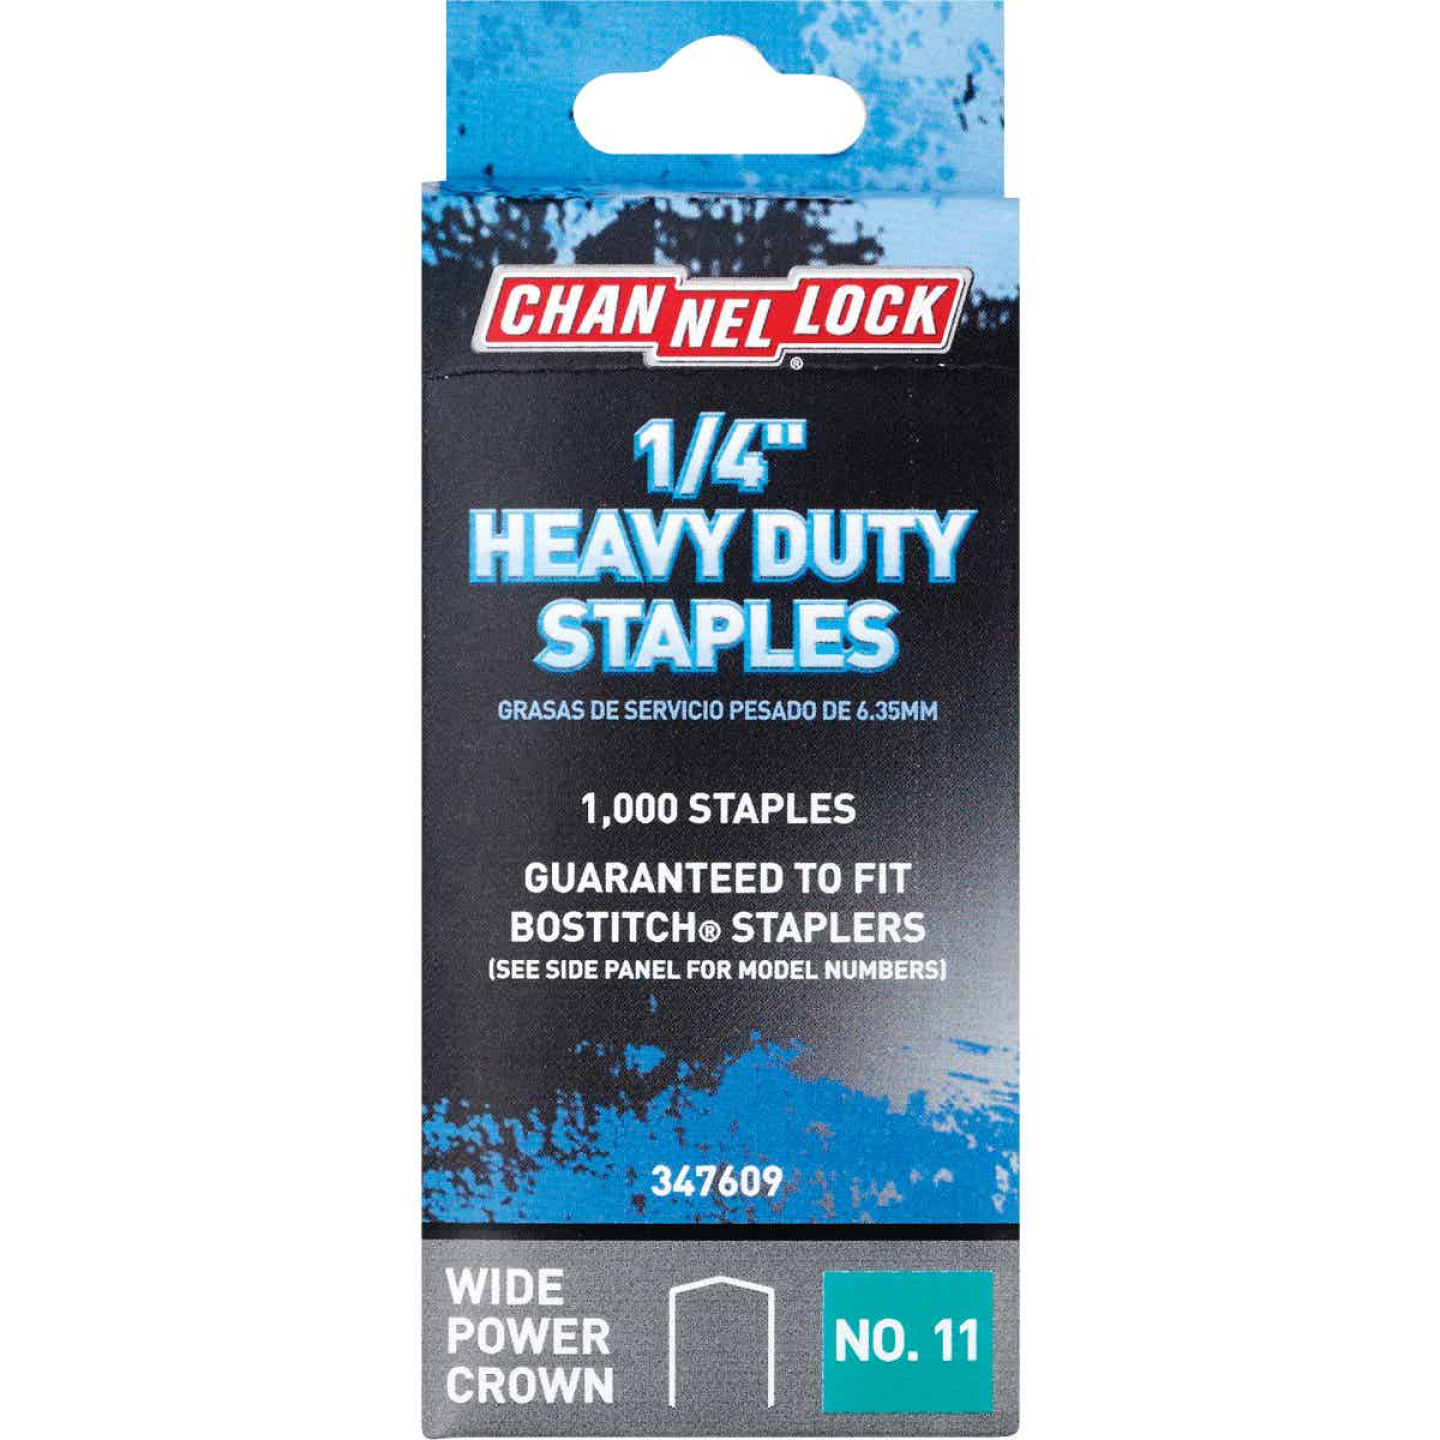 Channellock No. 11 Heavy-Duty Wide Power Crown Staple, 1/4 In. (1000-Pack) Image 1